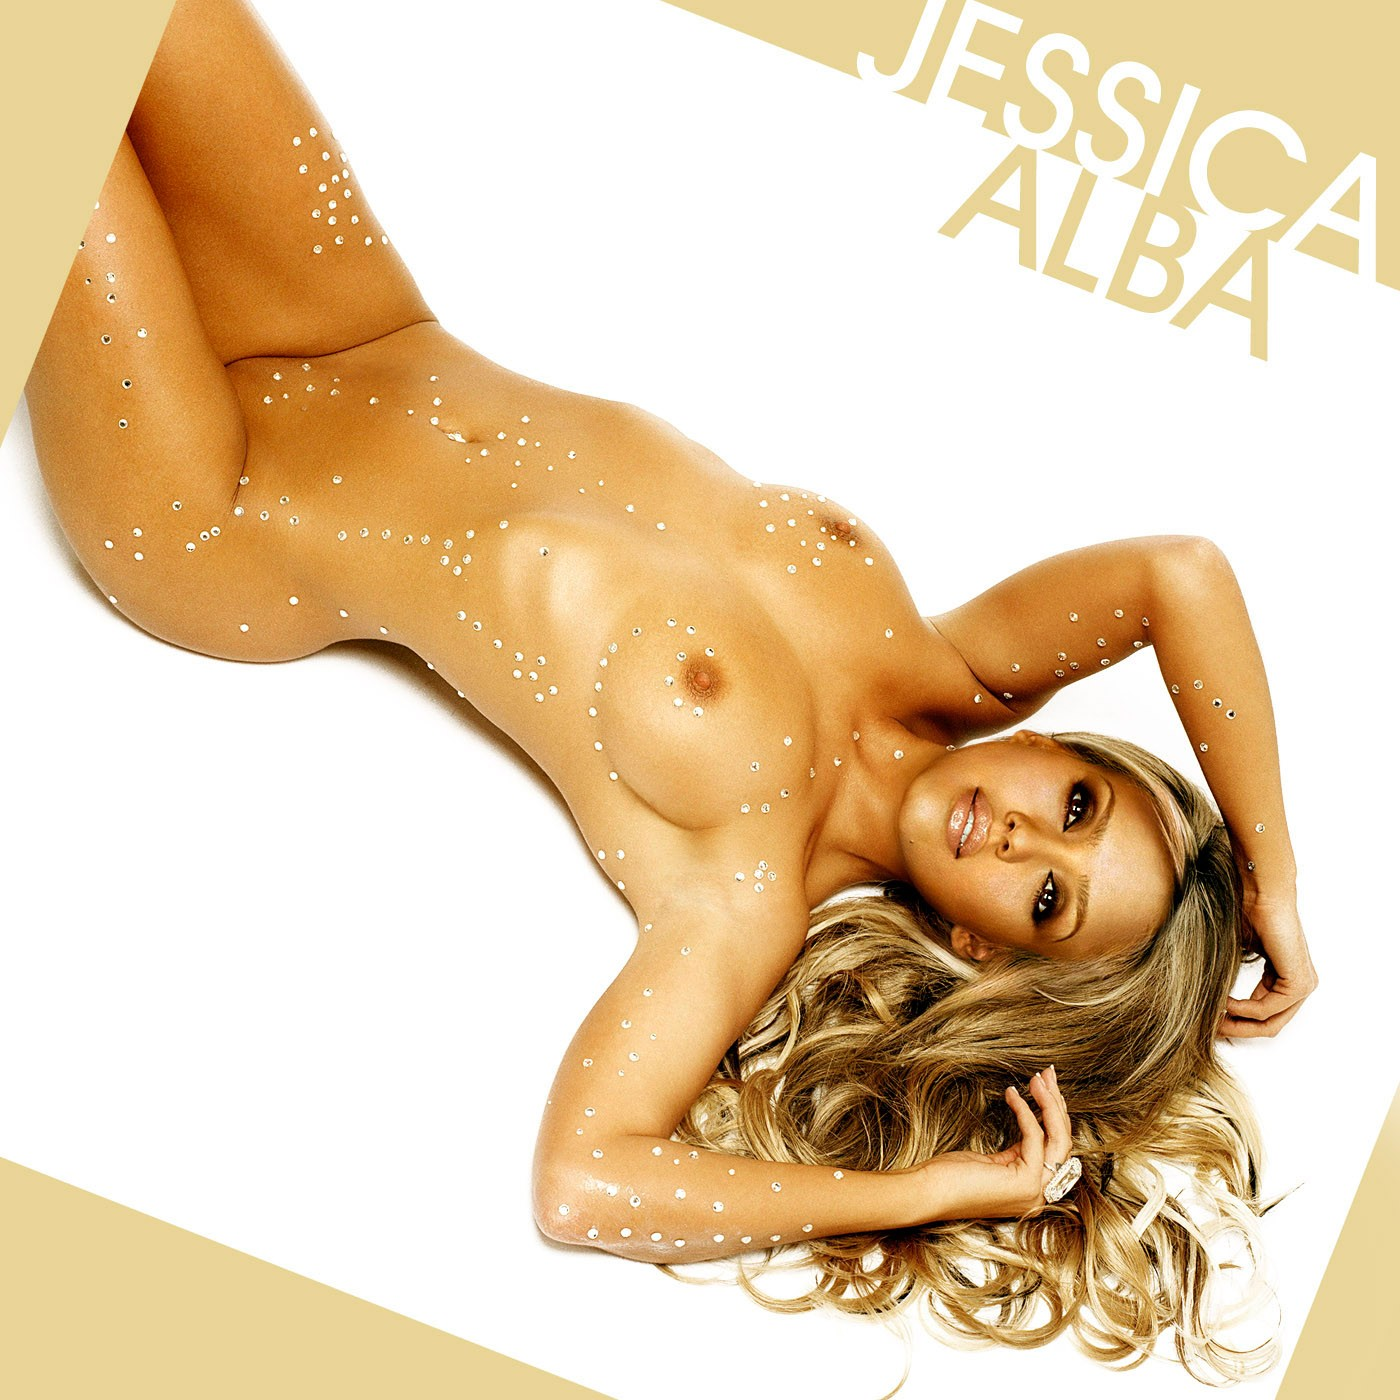 Naked drawings of jessica alba — pic 3